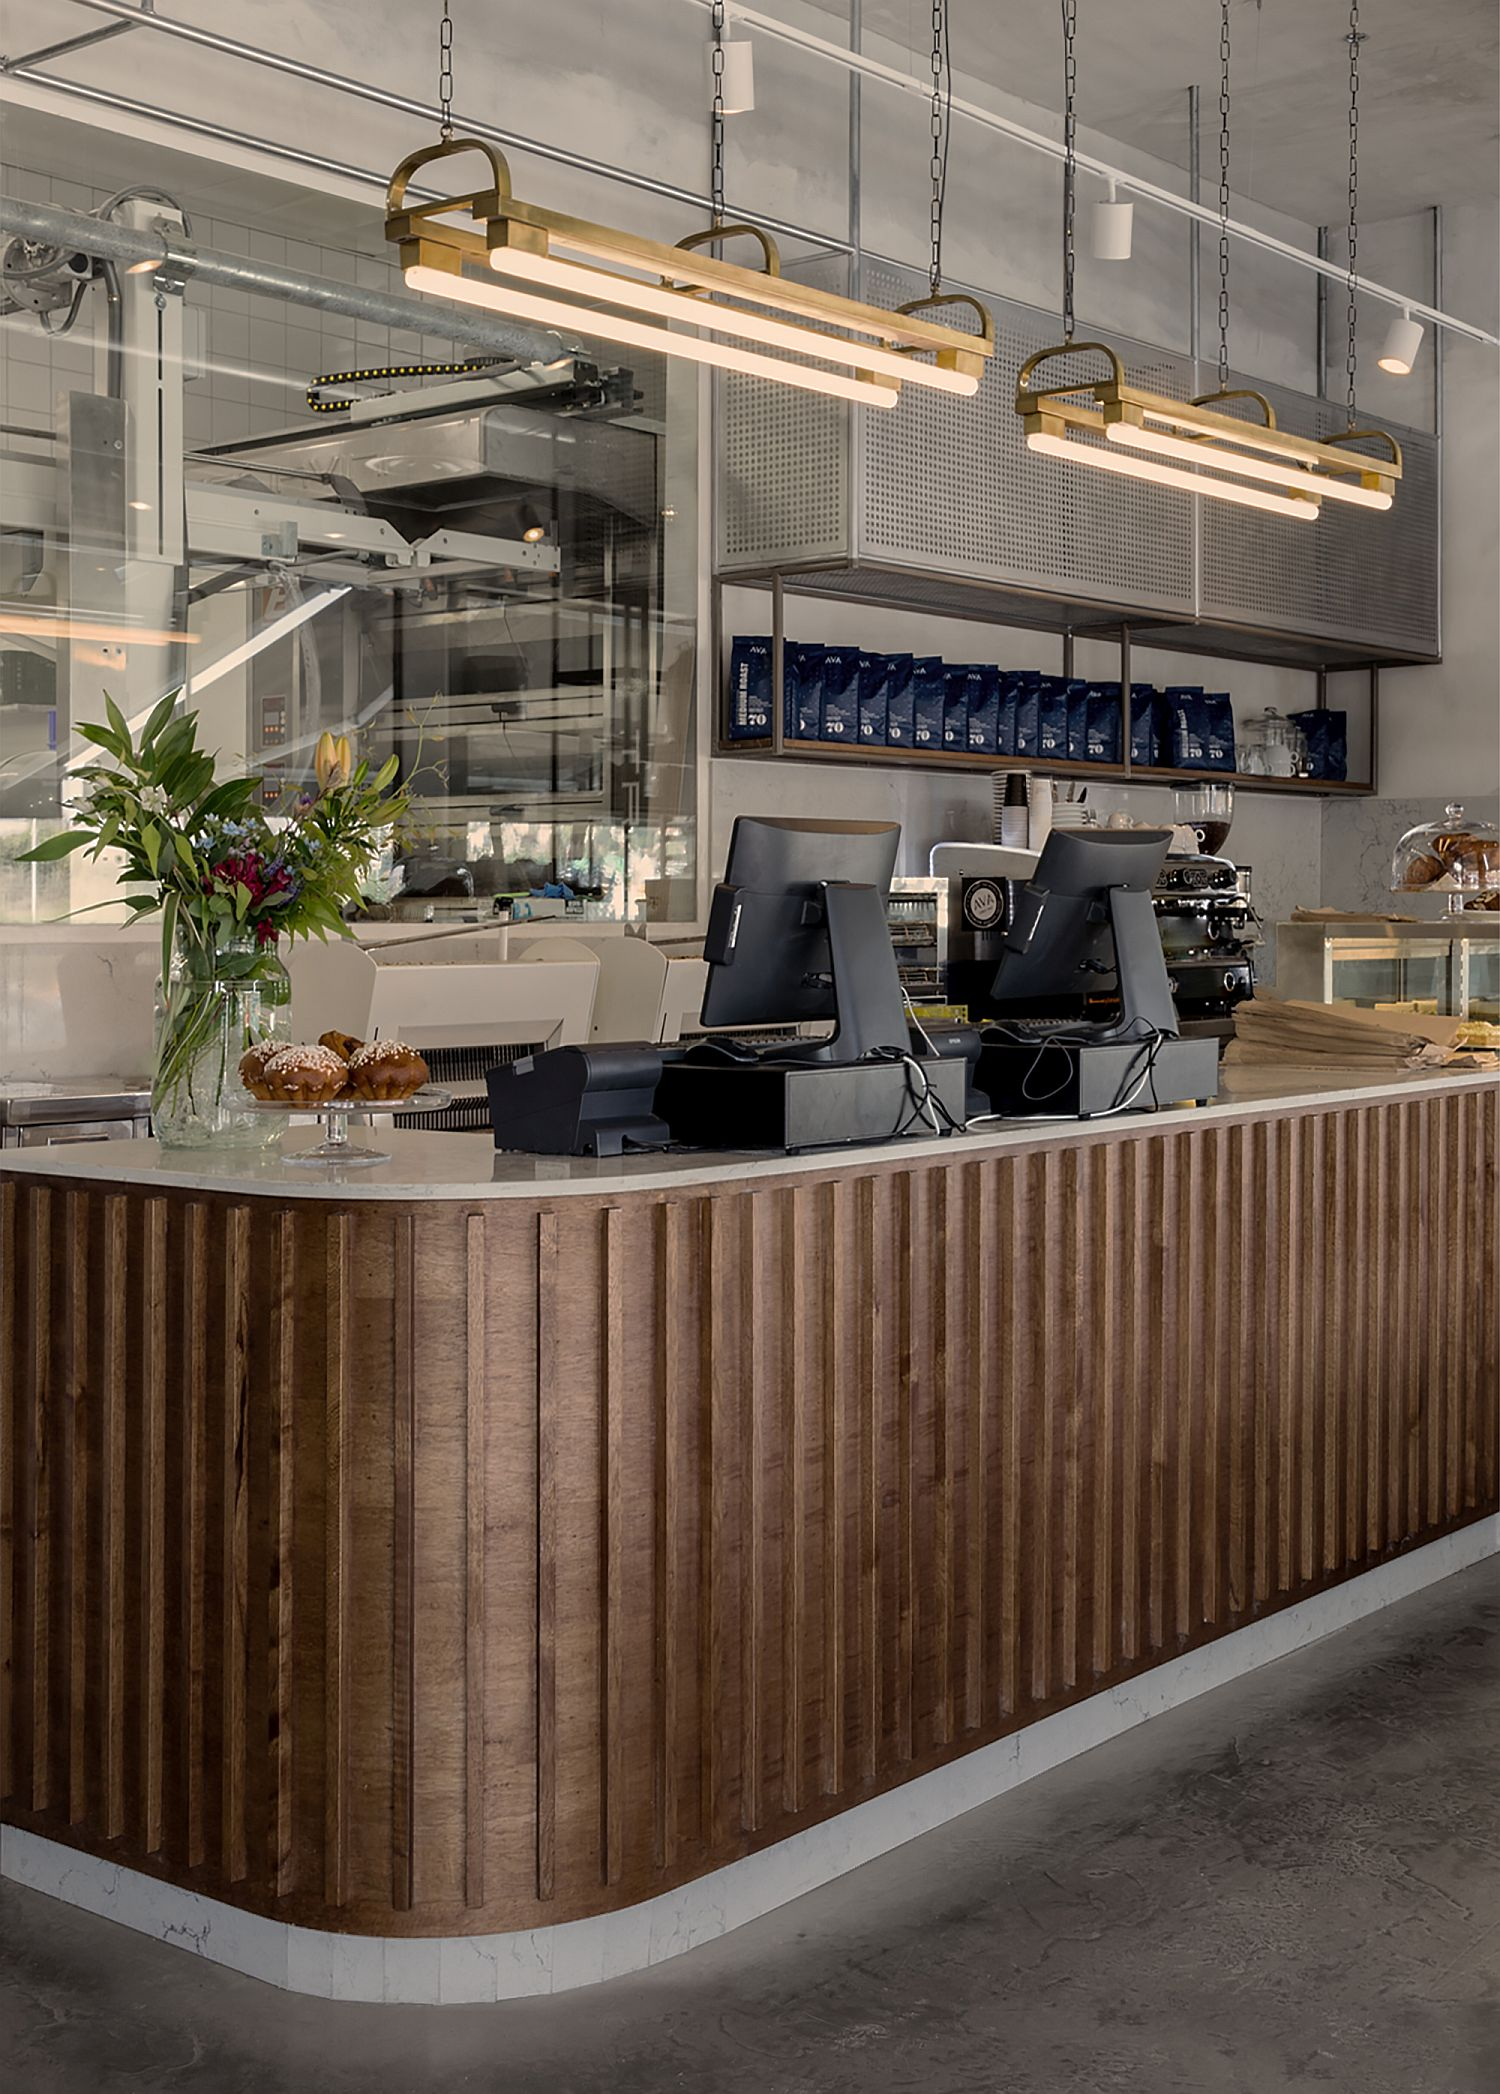 Curved-front-desk-at-the-Teller-Bakery-gives-it-distinct-identity